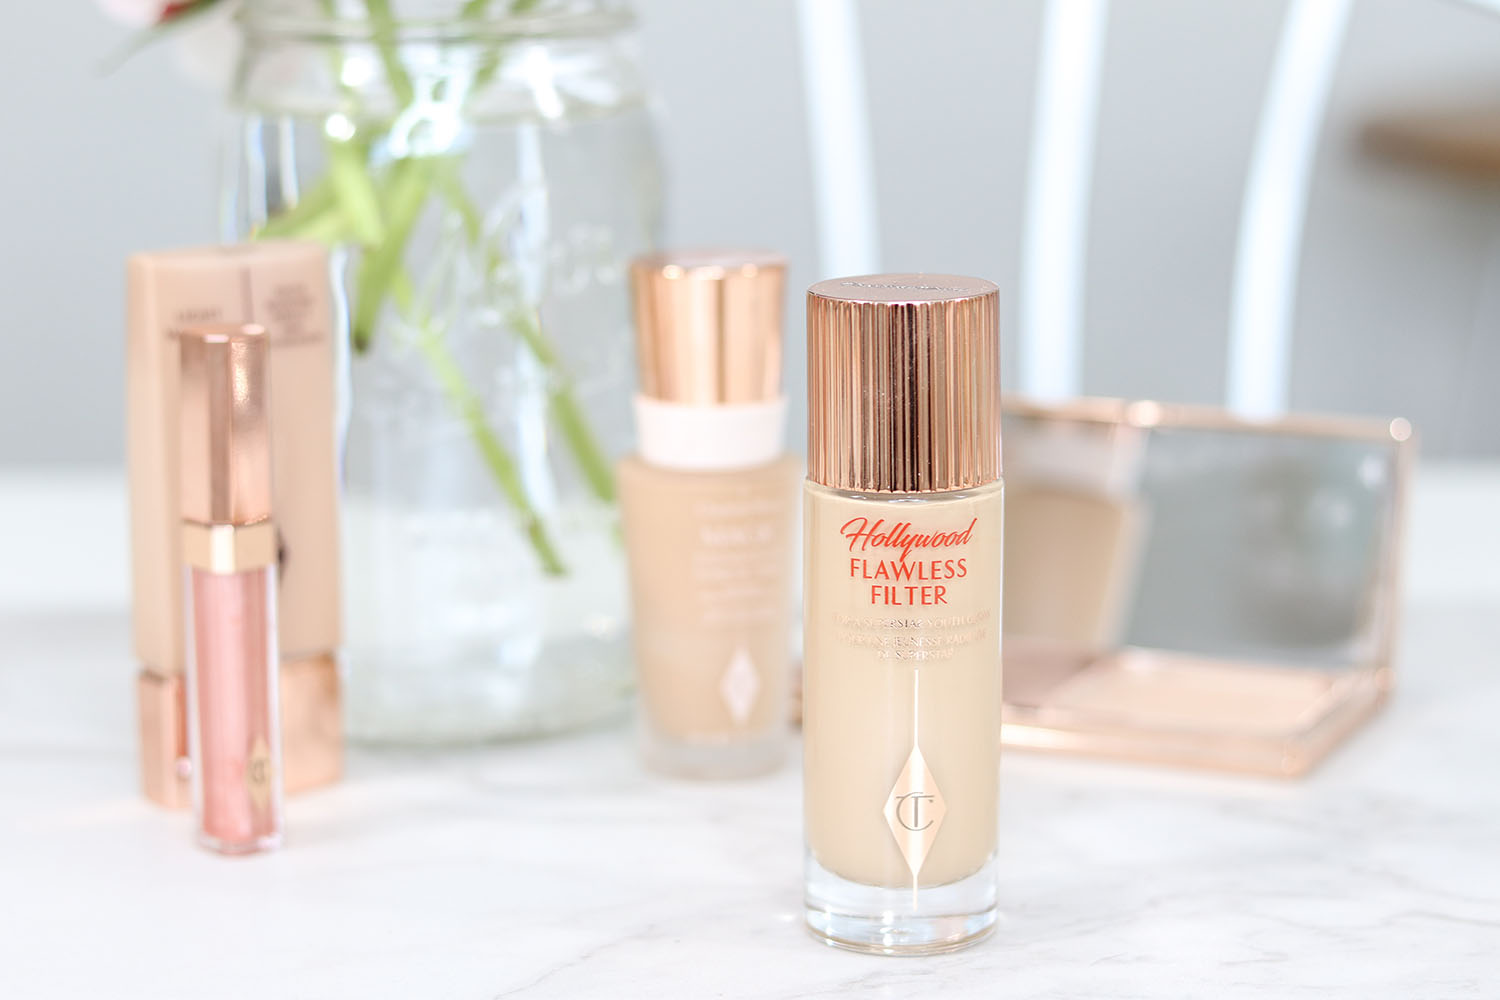 Charlotte Tilbury Hollywood Flawless Filter Review and Demo